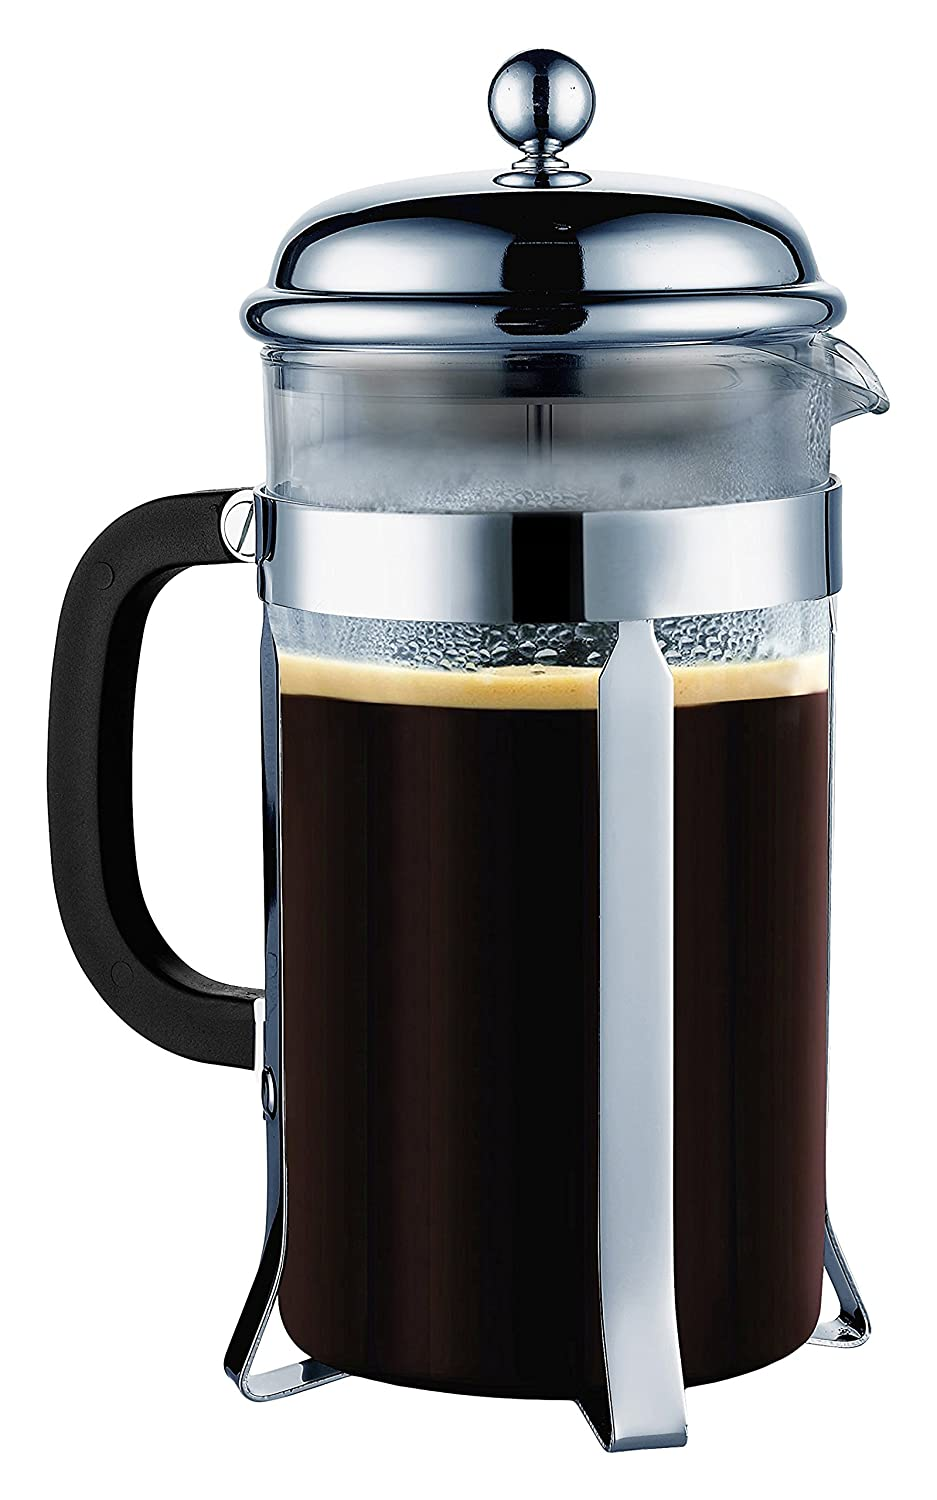 SterlingPro French Press Coffee Maker Review